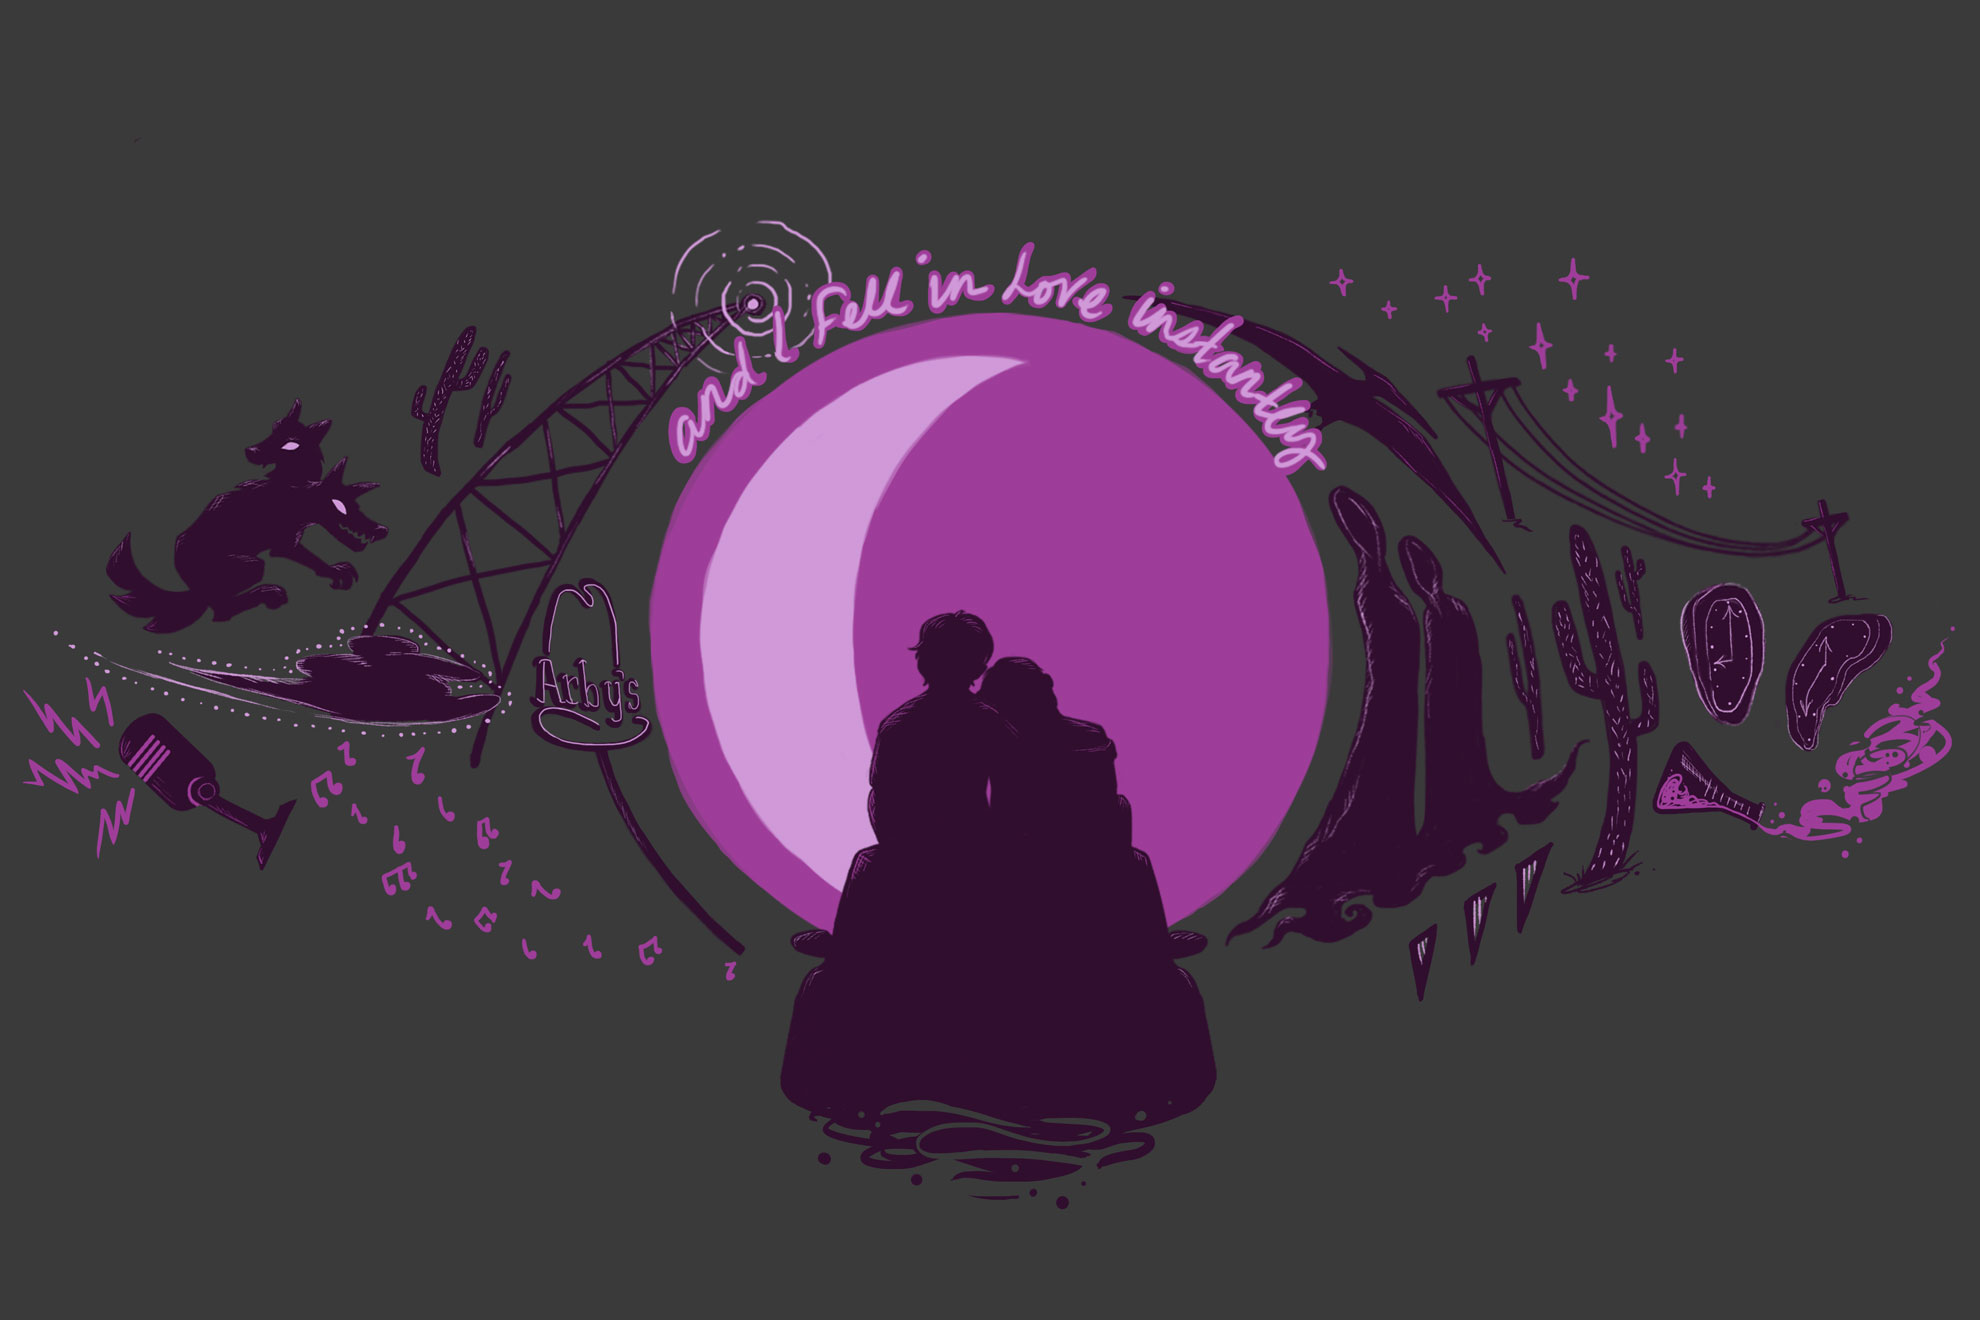 Cecil & Carlos T-Shirt Design that sold for a limited time on Welcome to Nightvale's official store